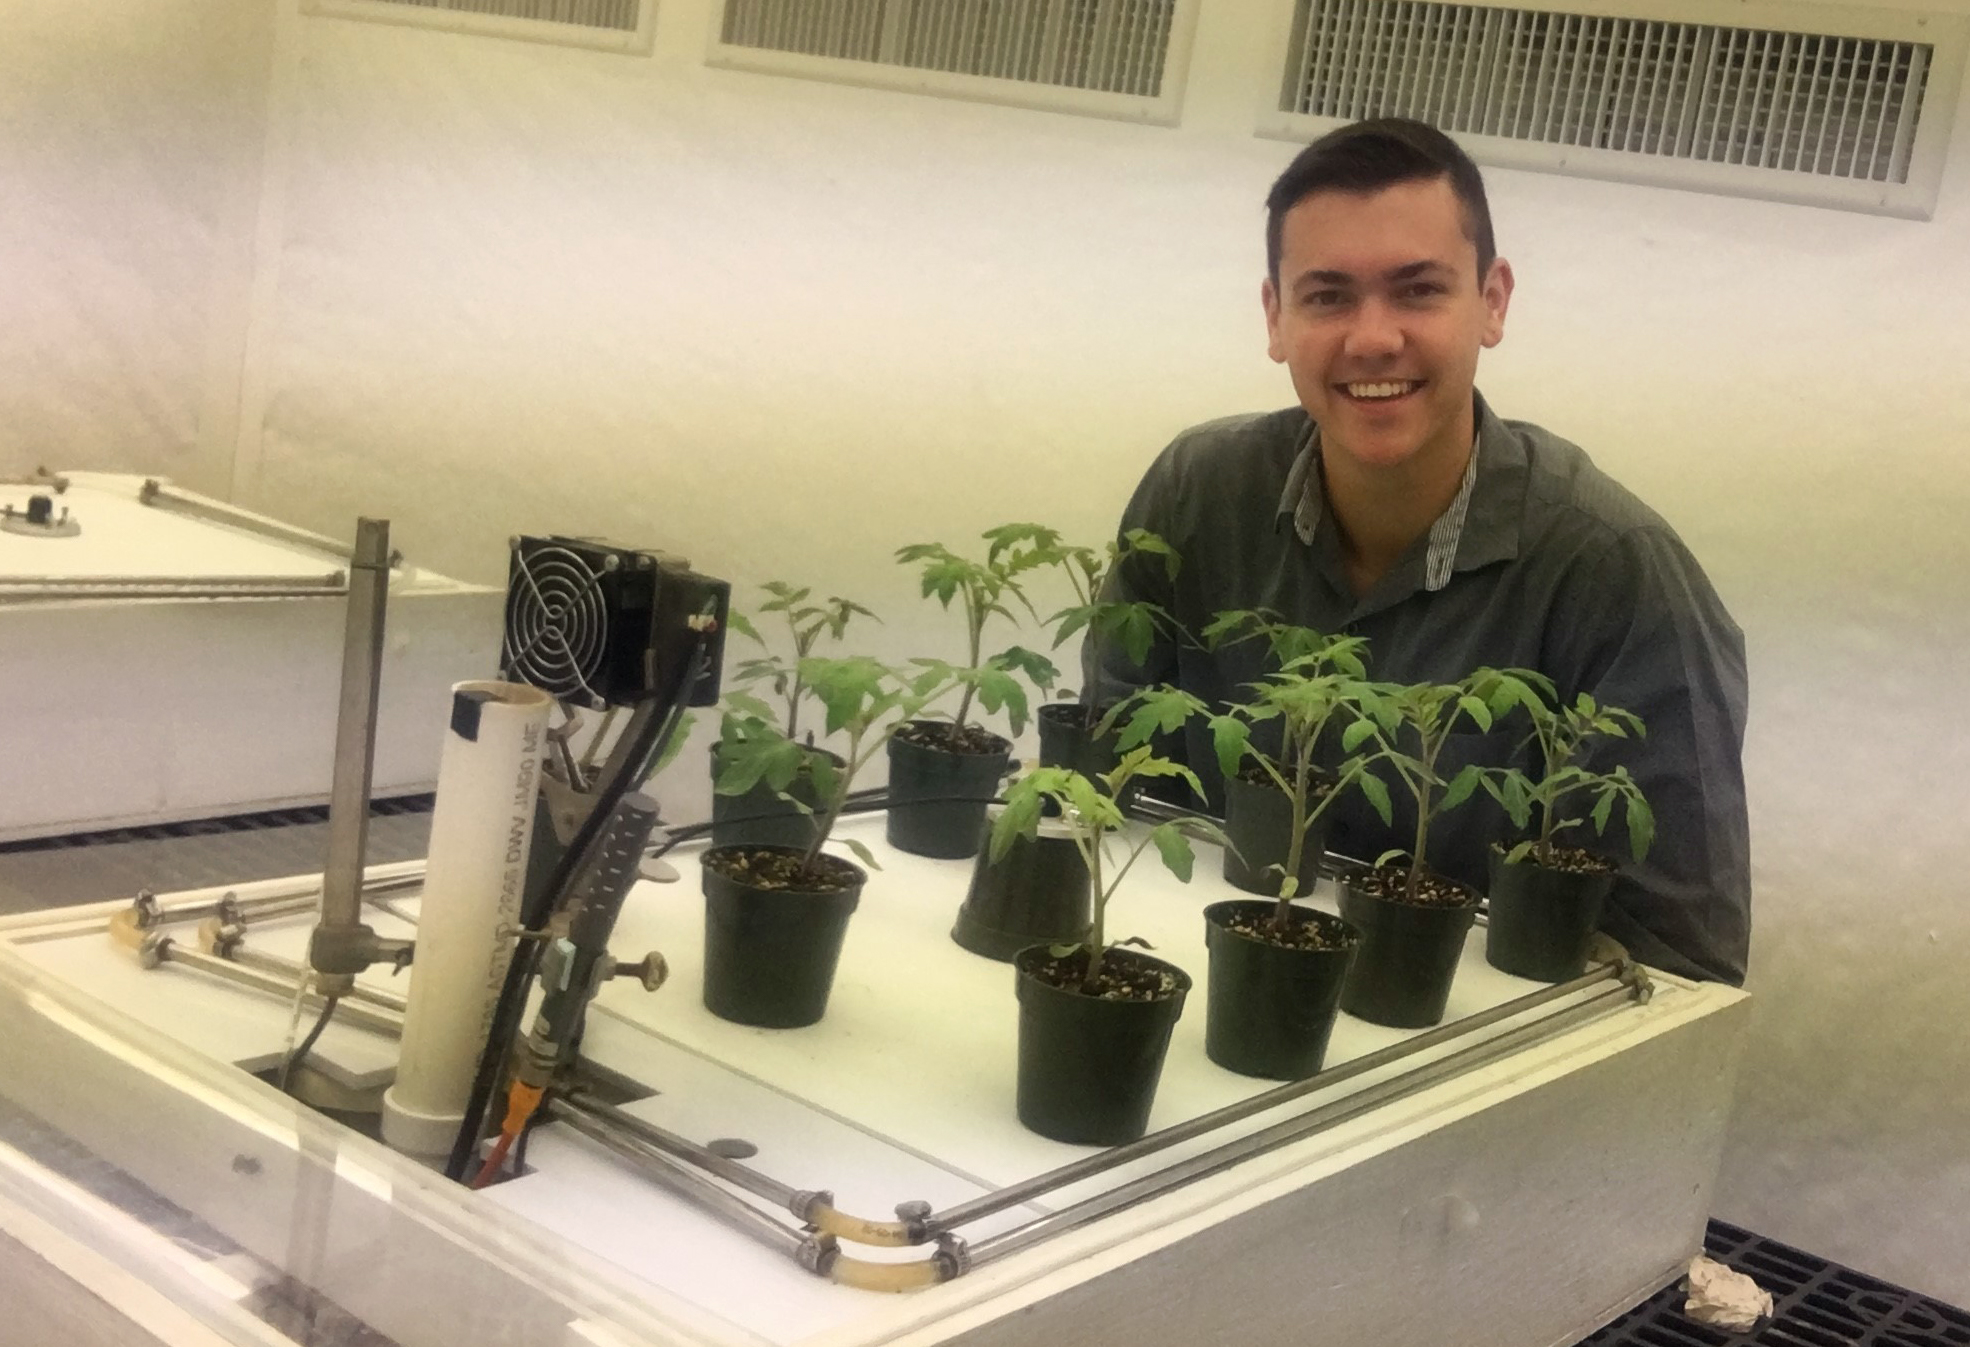 Dylan Kovach displays the tomato plants he is monitoring in his lab at Cornell University. PHOTO COURTESY DYLAN KOVACH